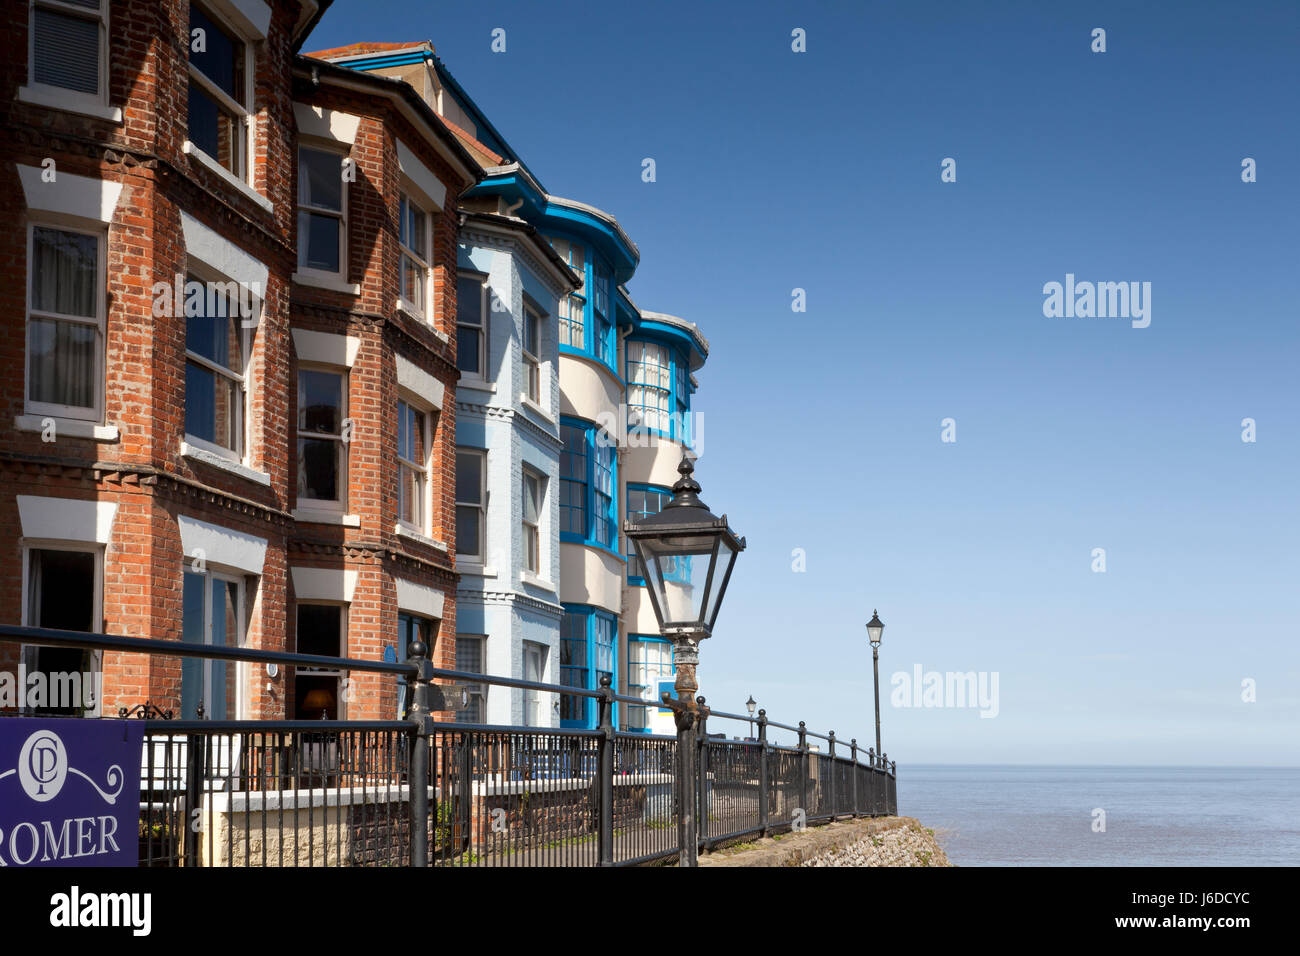 Victorian terraced houses at Cromer, Norfolk, UK - Stock Image